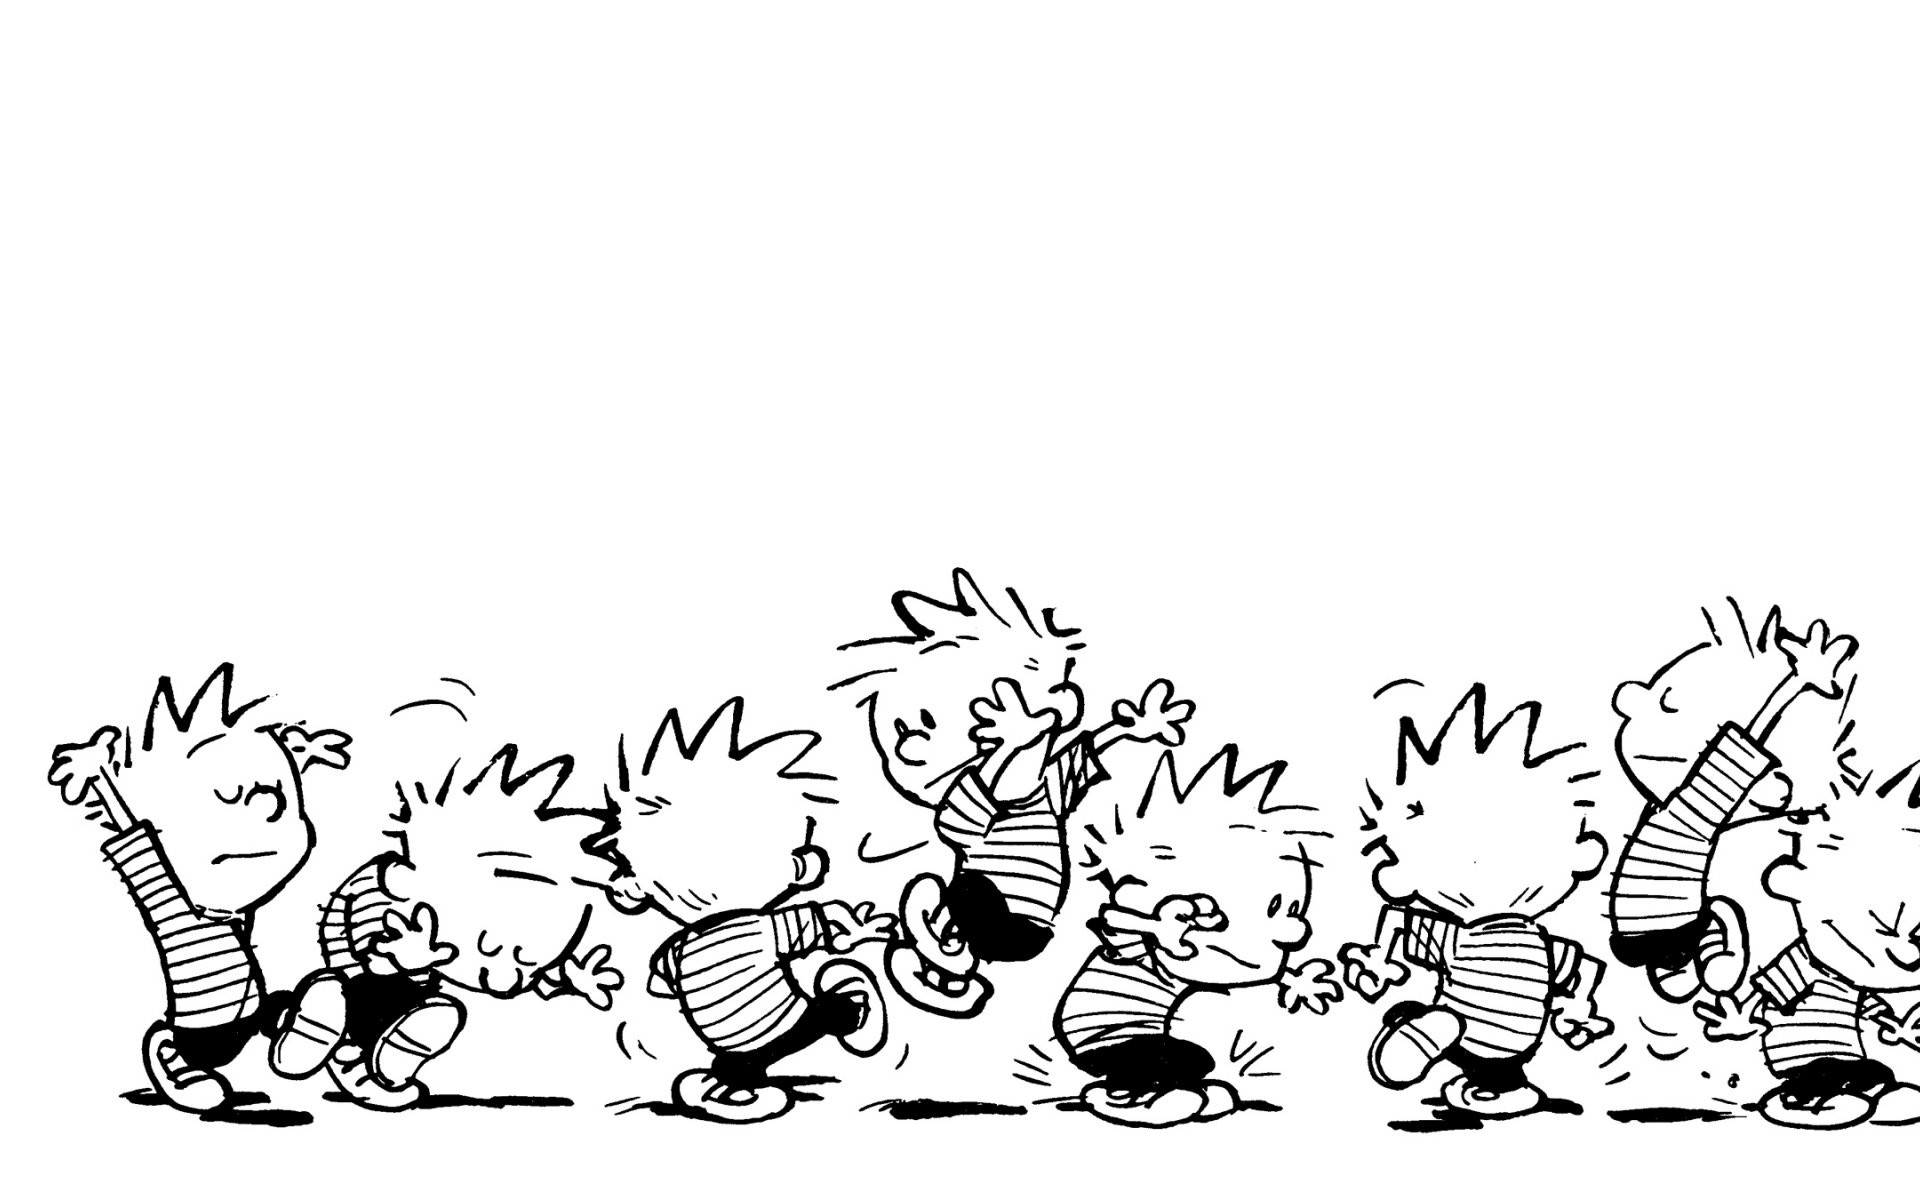 1920x1200 Calvin-and-hobbes-comics-wallpapers